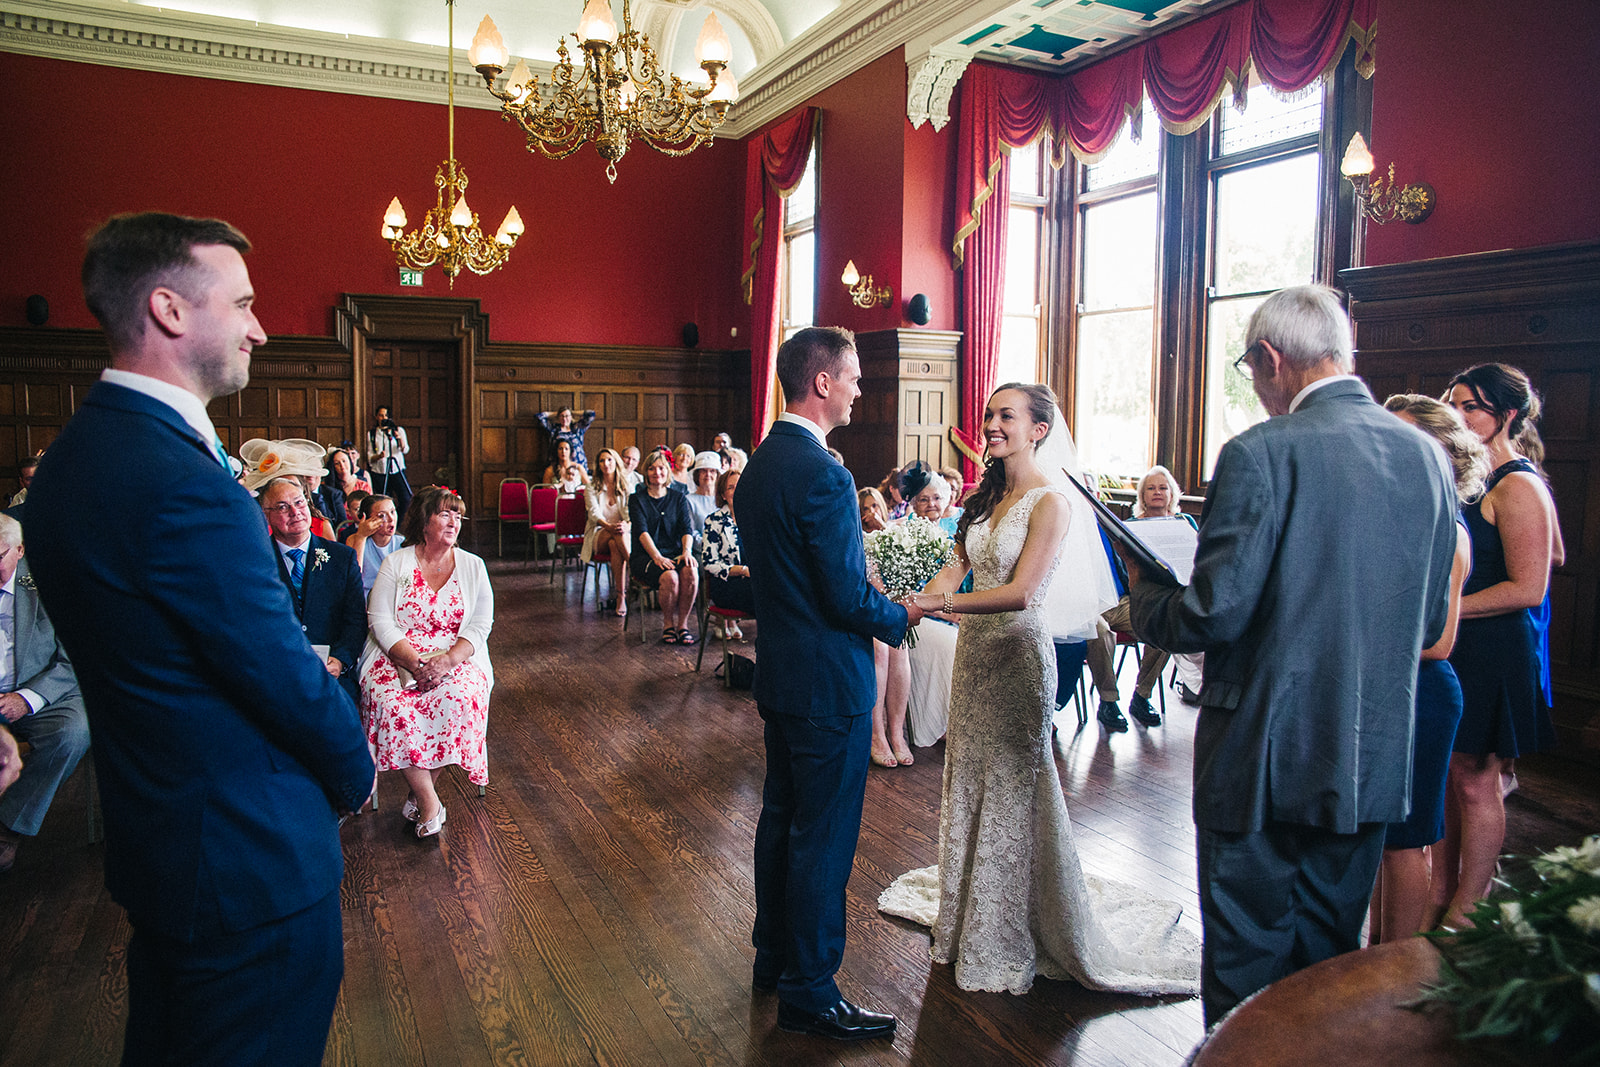 preston park museum hall wedding north yorkshire teesside middlesbrough. creative wedding photography middlesbrough north east north yorkshire. stop motion wedding films uk